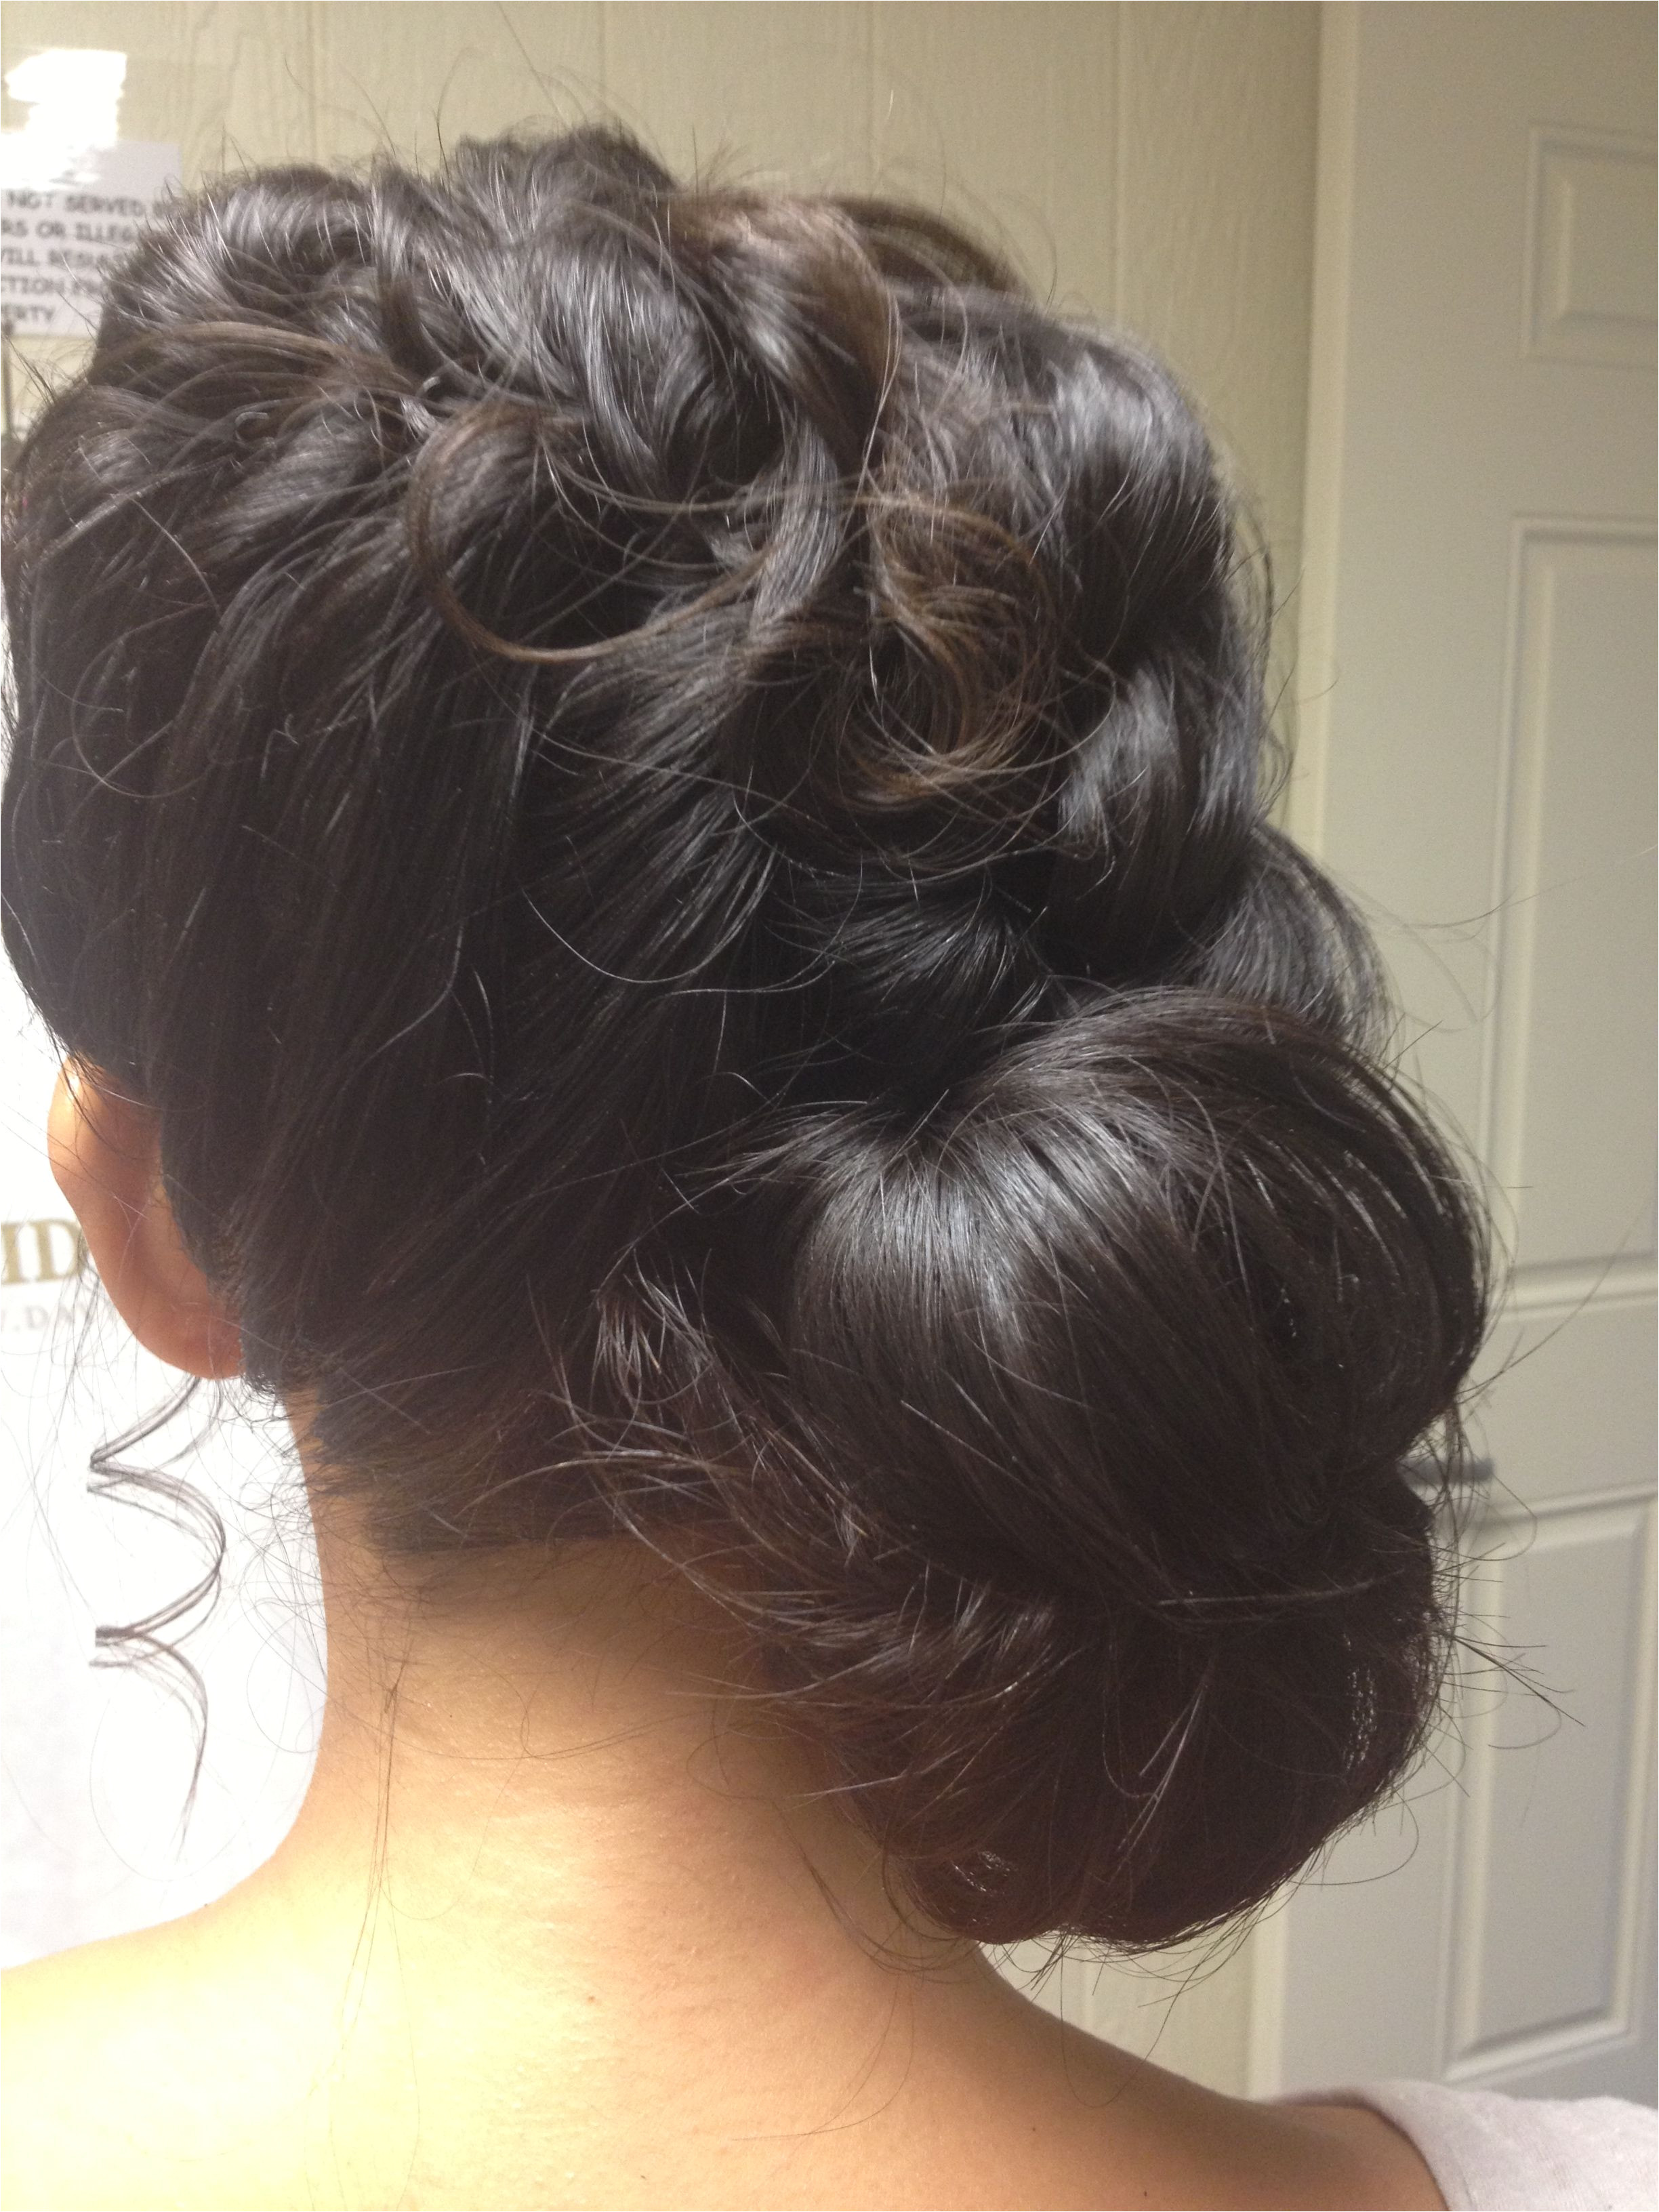 My bridesmaid hair A braid down the side into a low side bun with